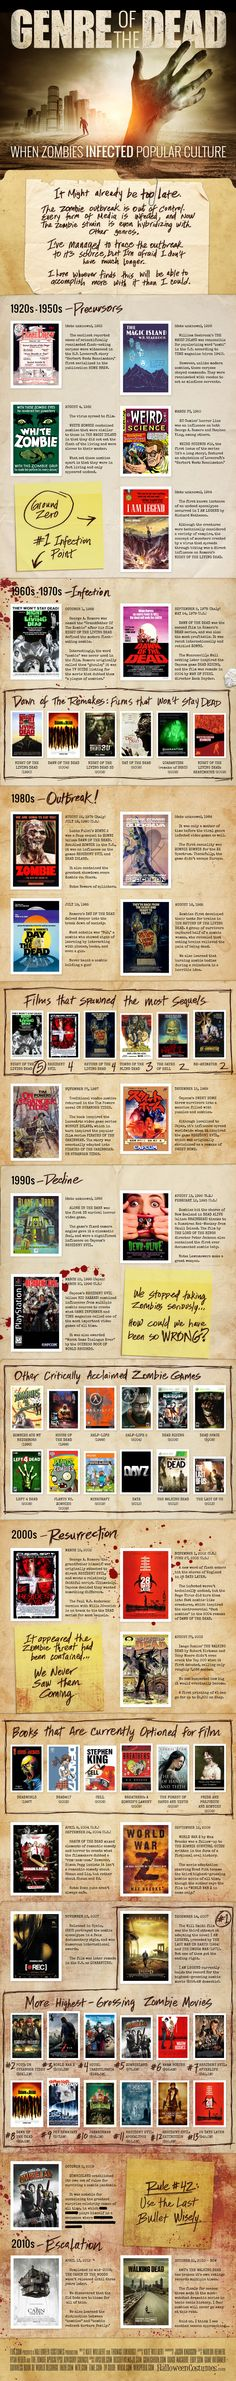 Infographic: Trace the Zombie Epidemic in Pop Culture Back to Its Source